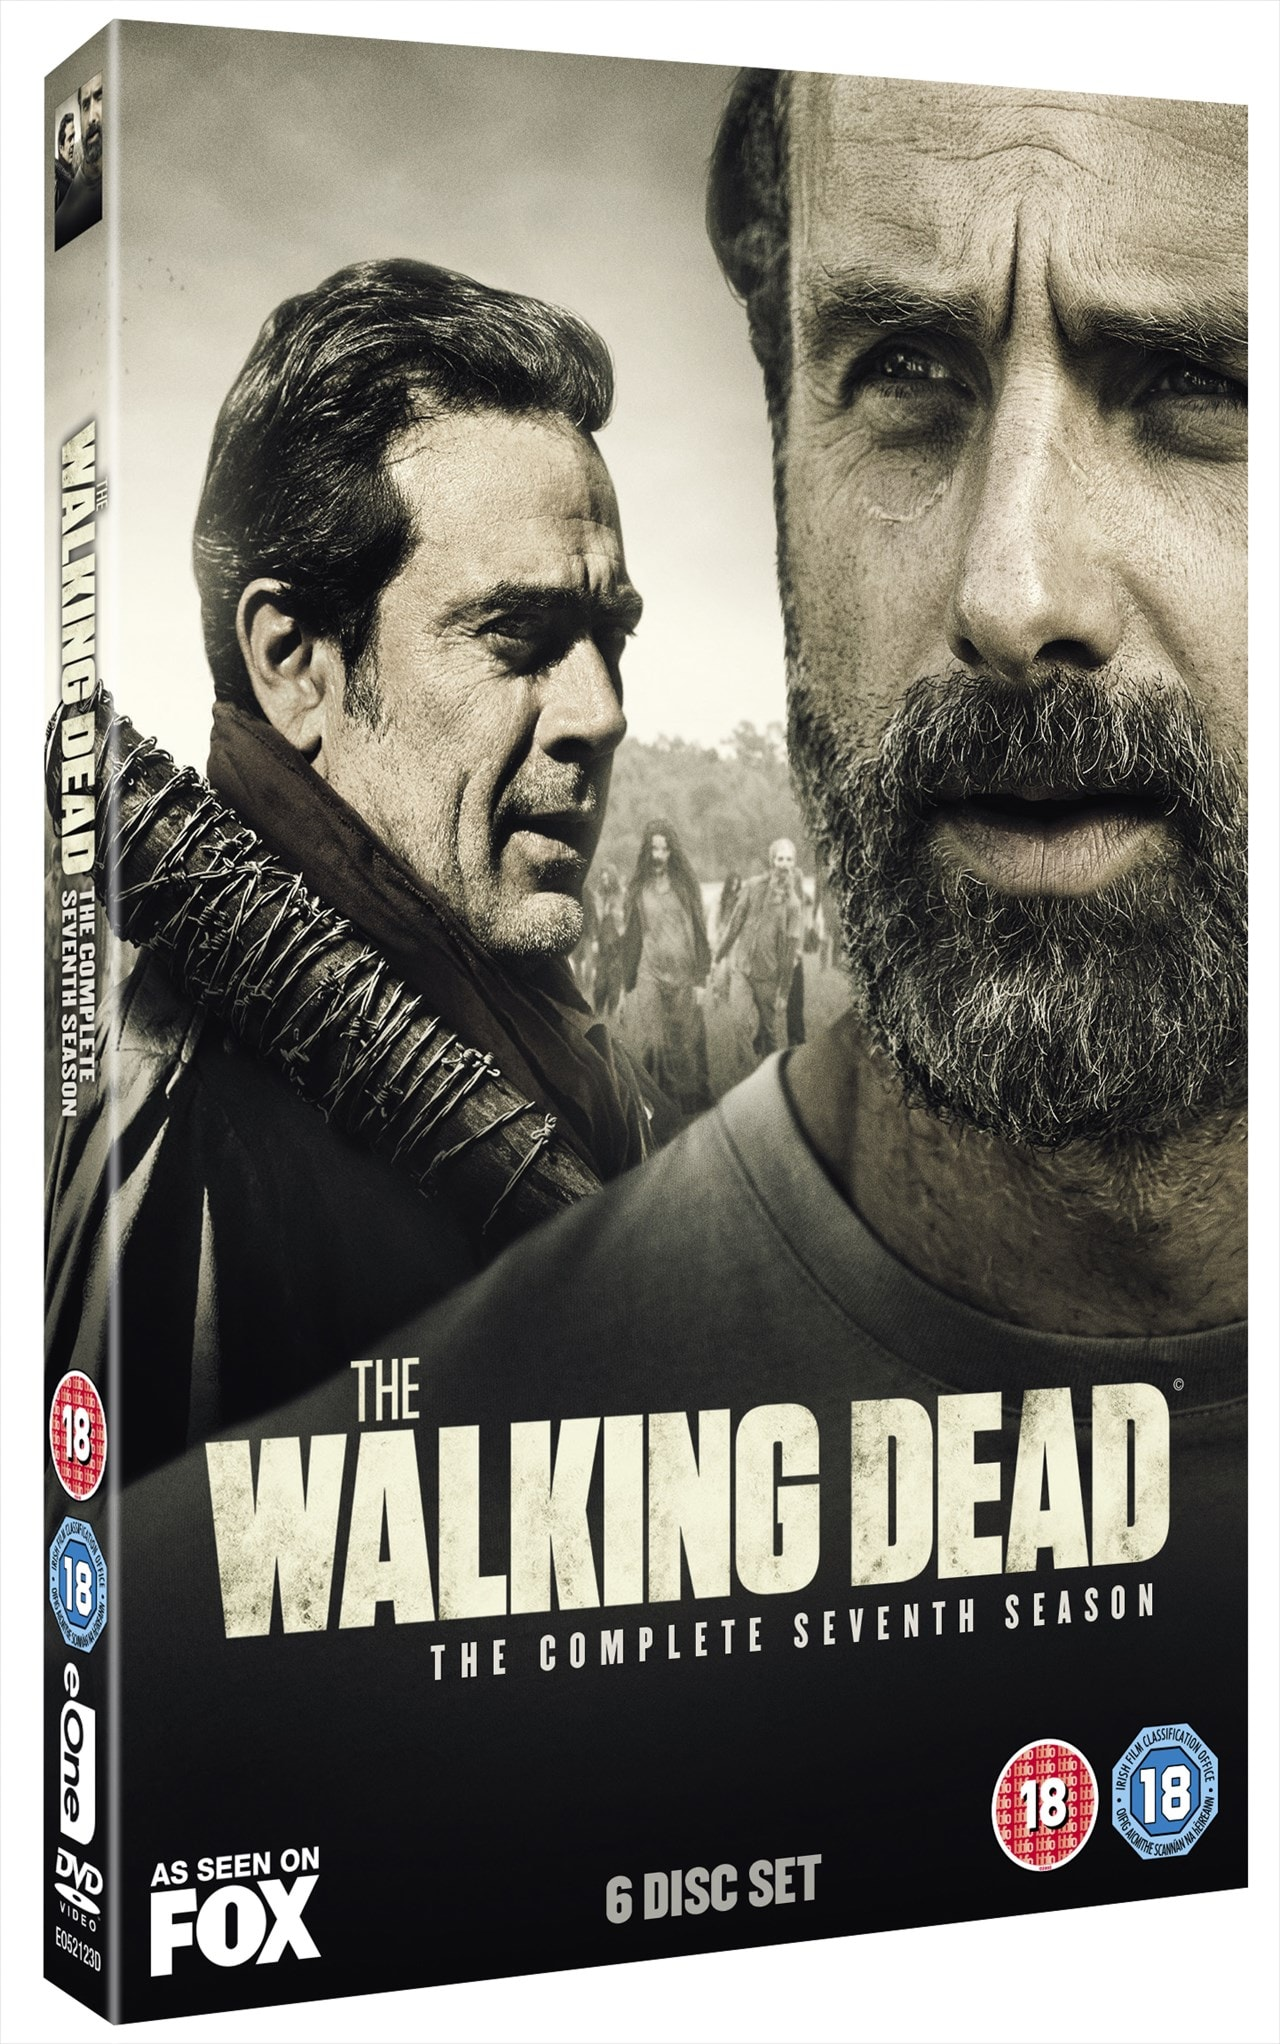 The Walking Dead: The Complete Seventh Season - 2